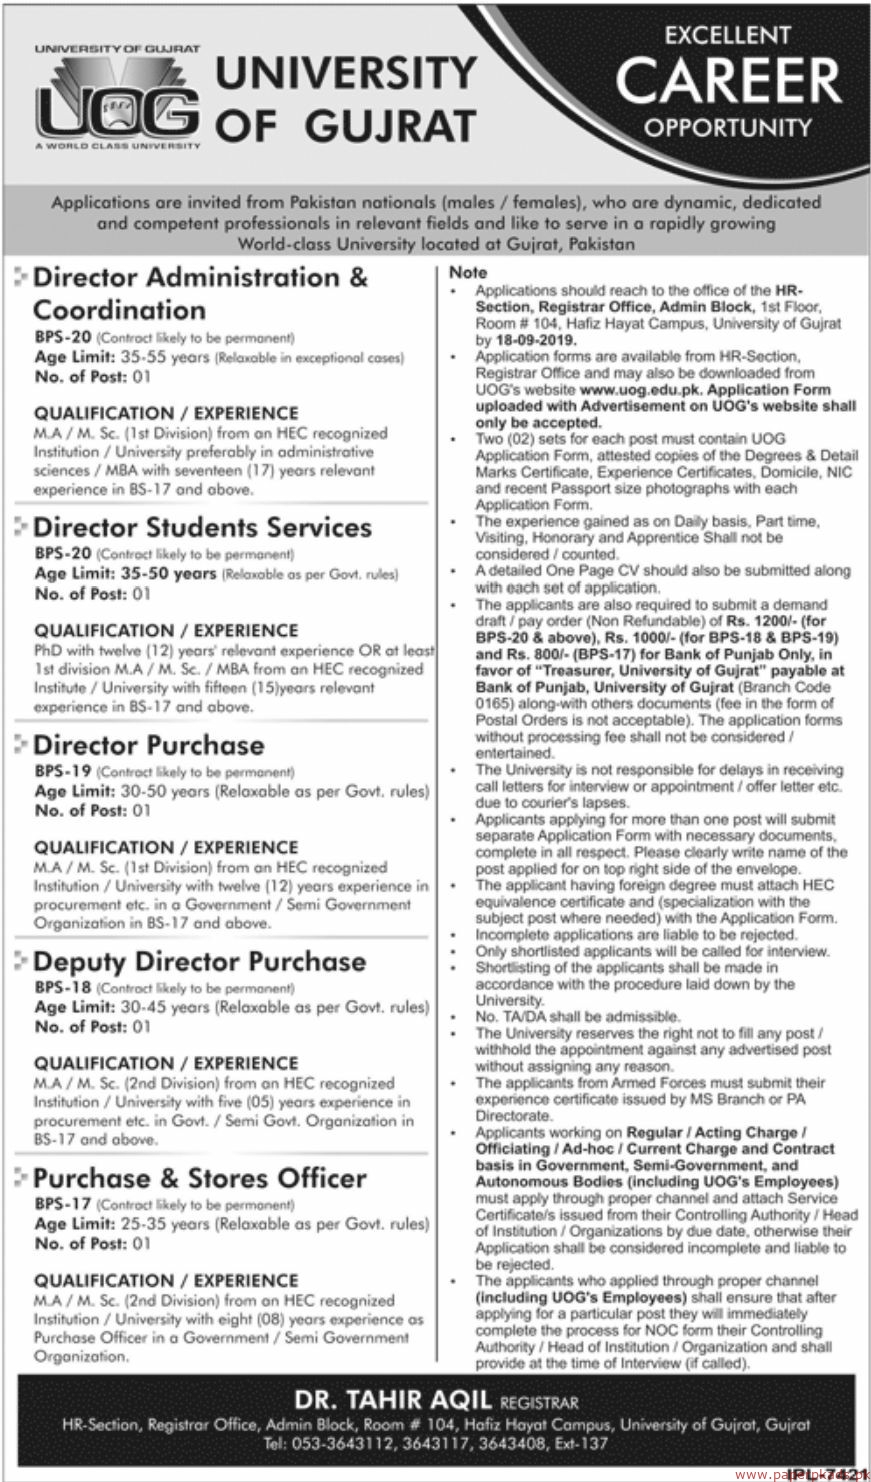 University of Gujrat Latest Jobs 2019